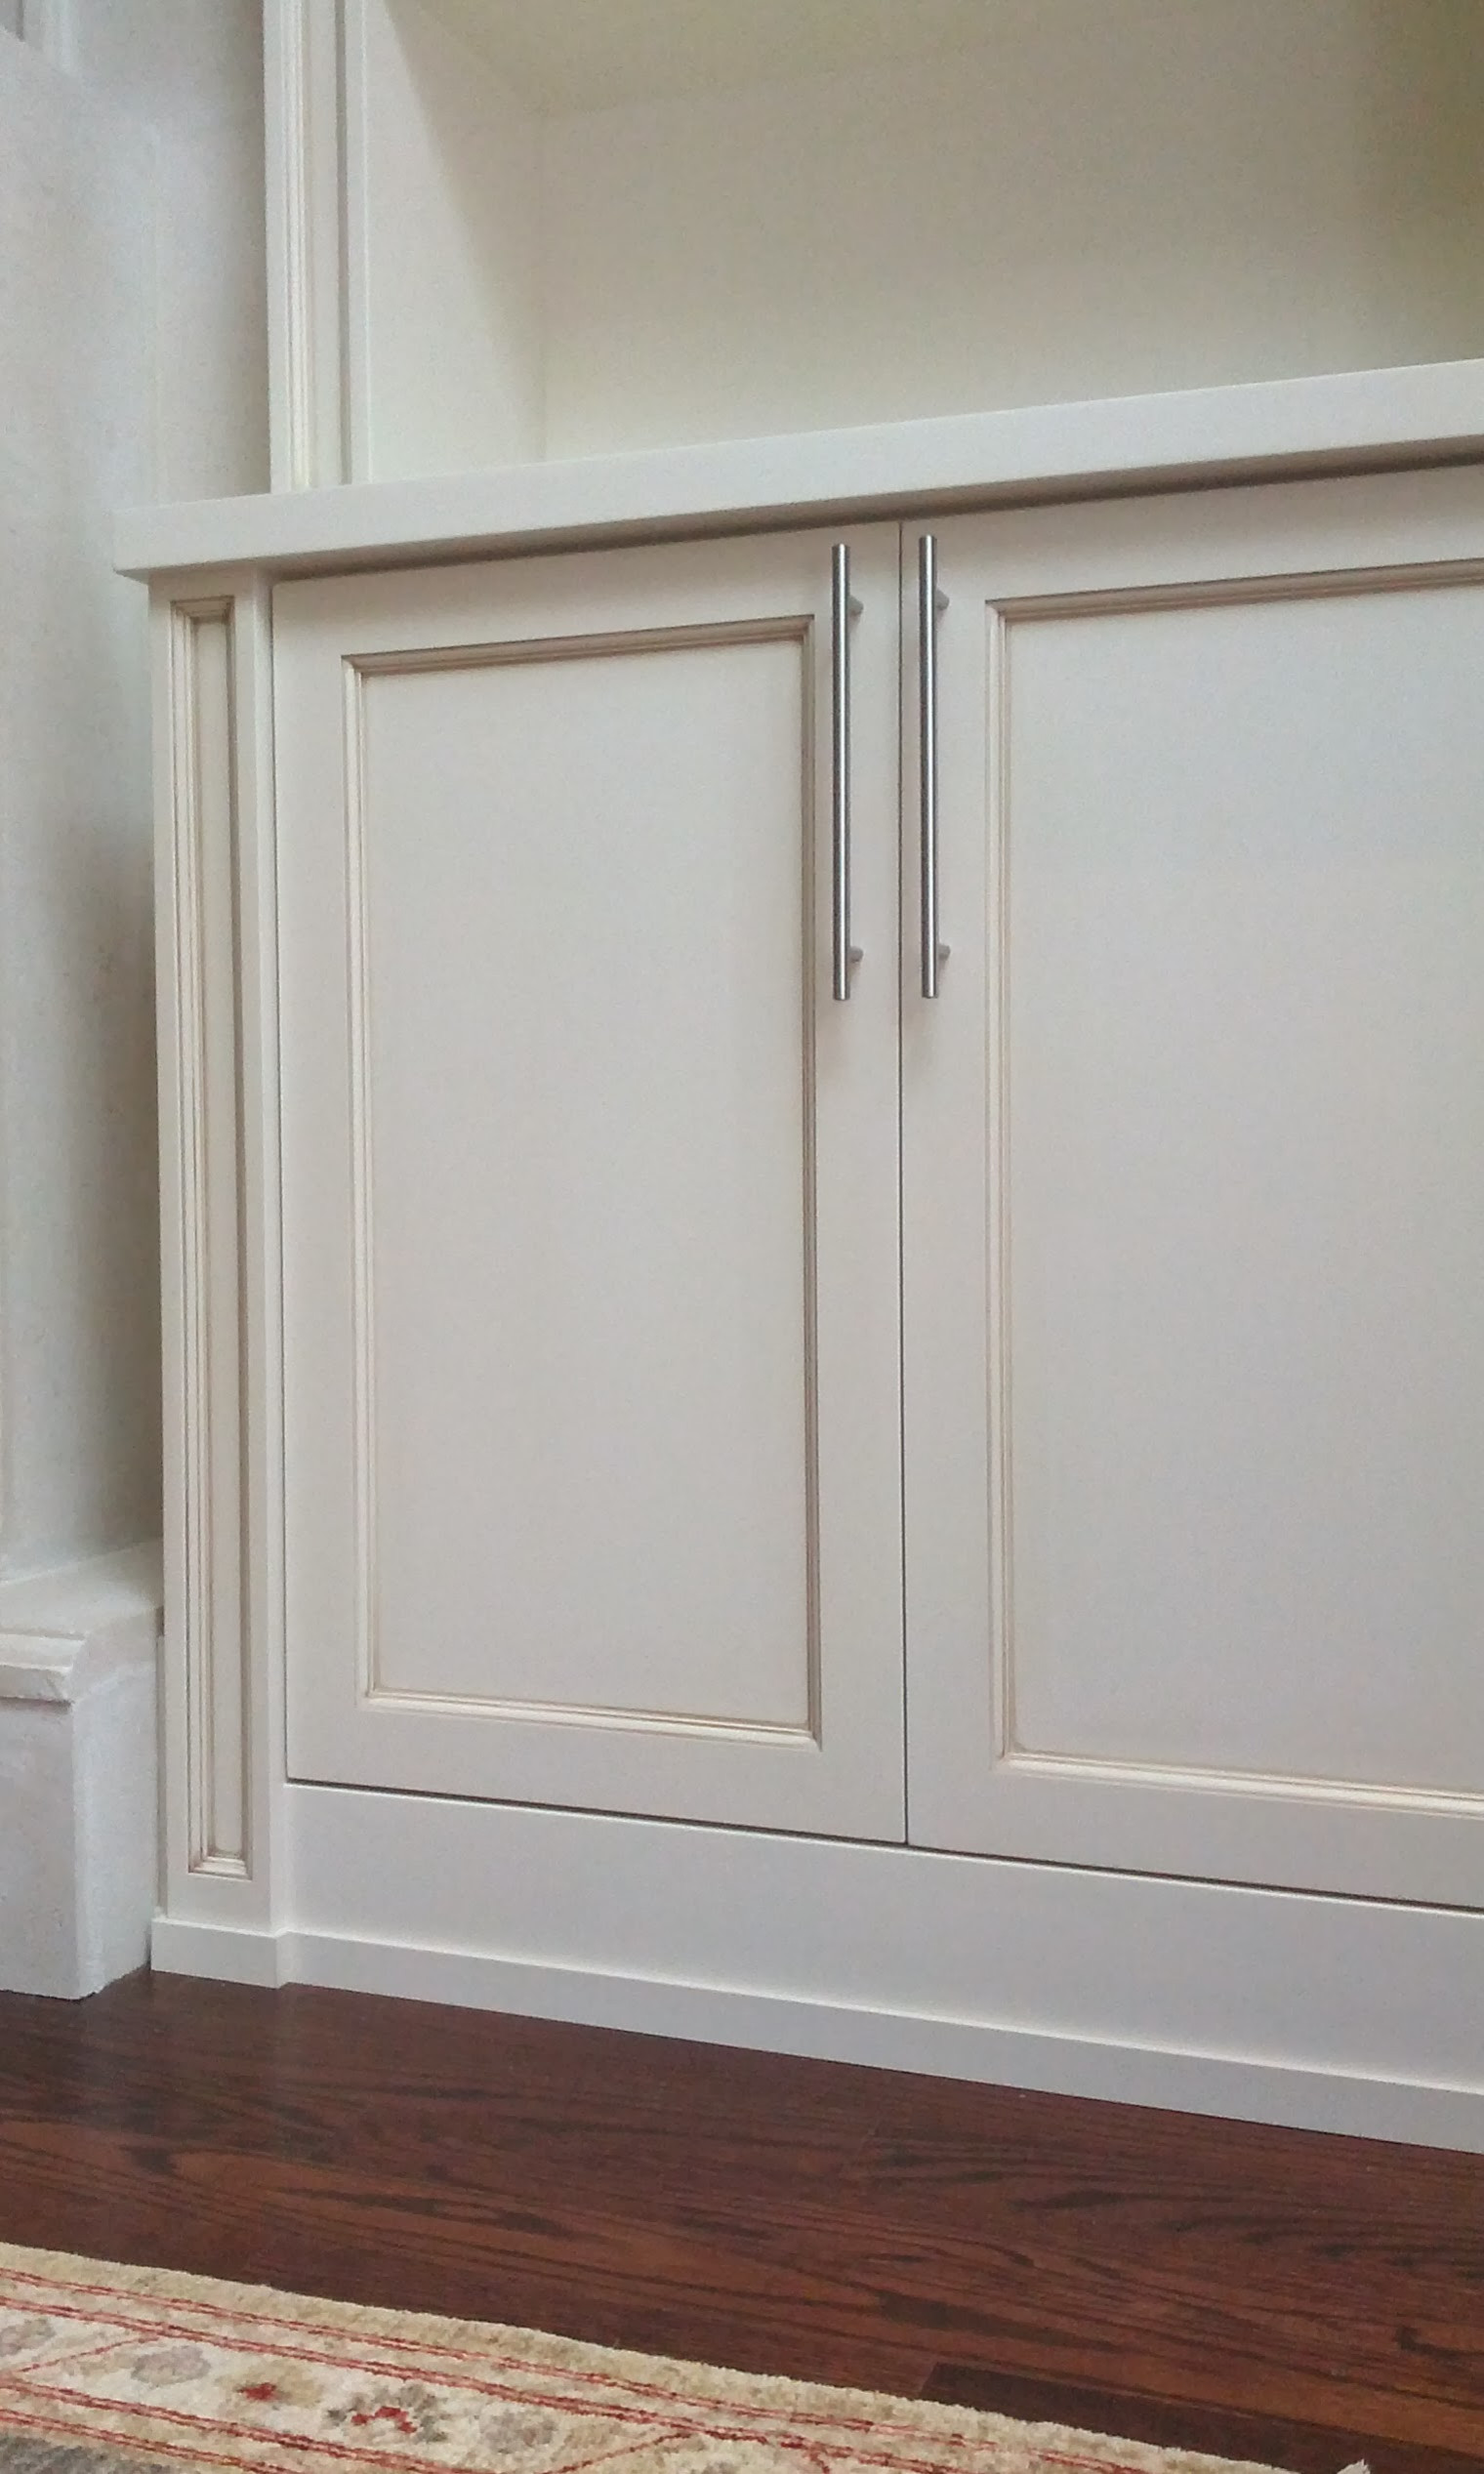 Built-in Units around existing Fireplace